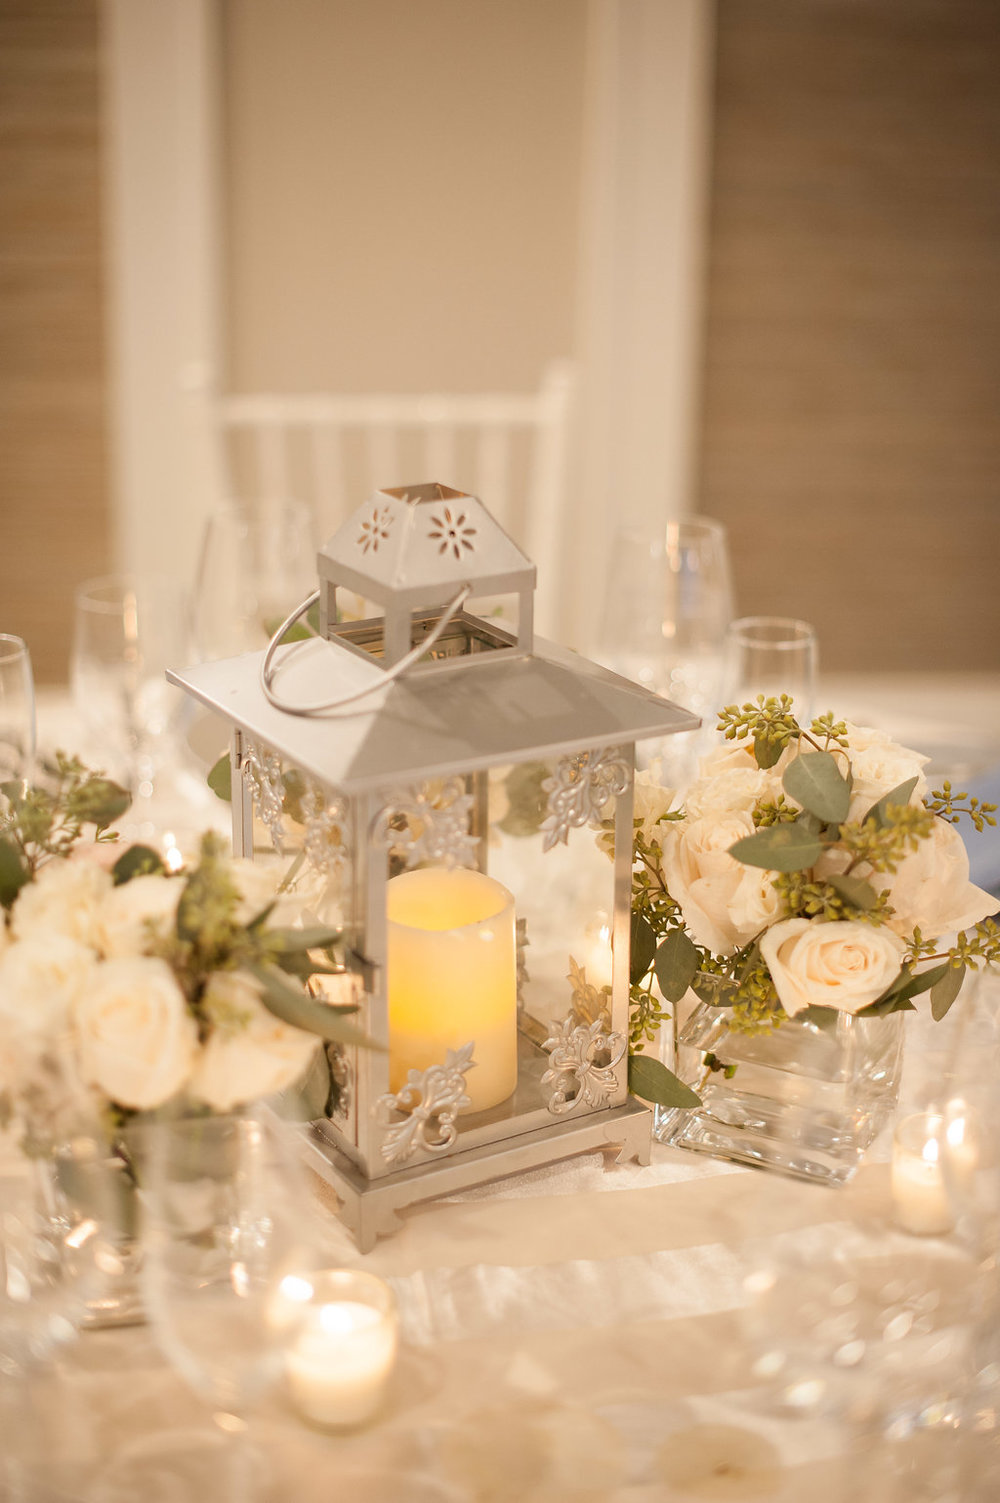 Lanterns and florals transferred from the ceremony adorned some of the tables.